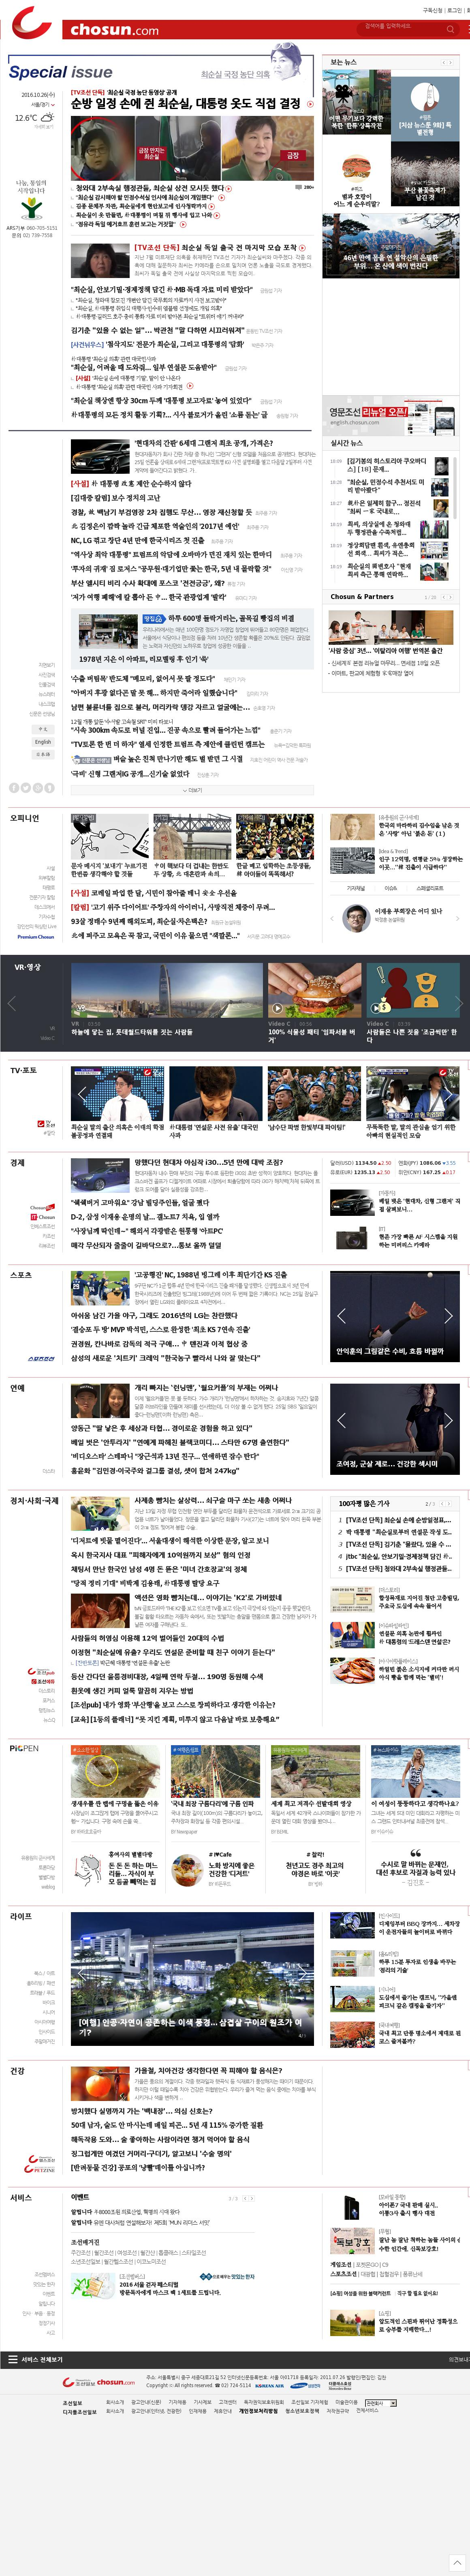 chosun.com at Tuesday Oct. 25, 2016, 8:02 p.m. UTC